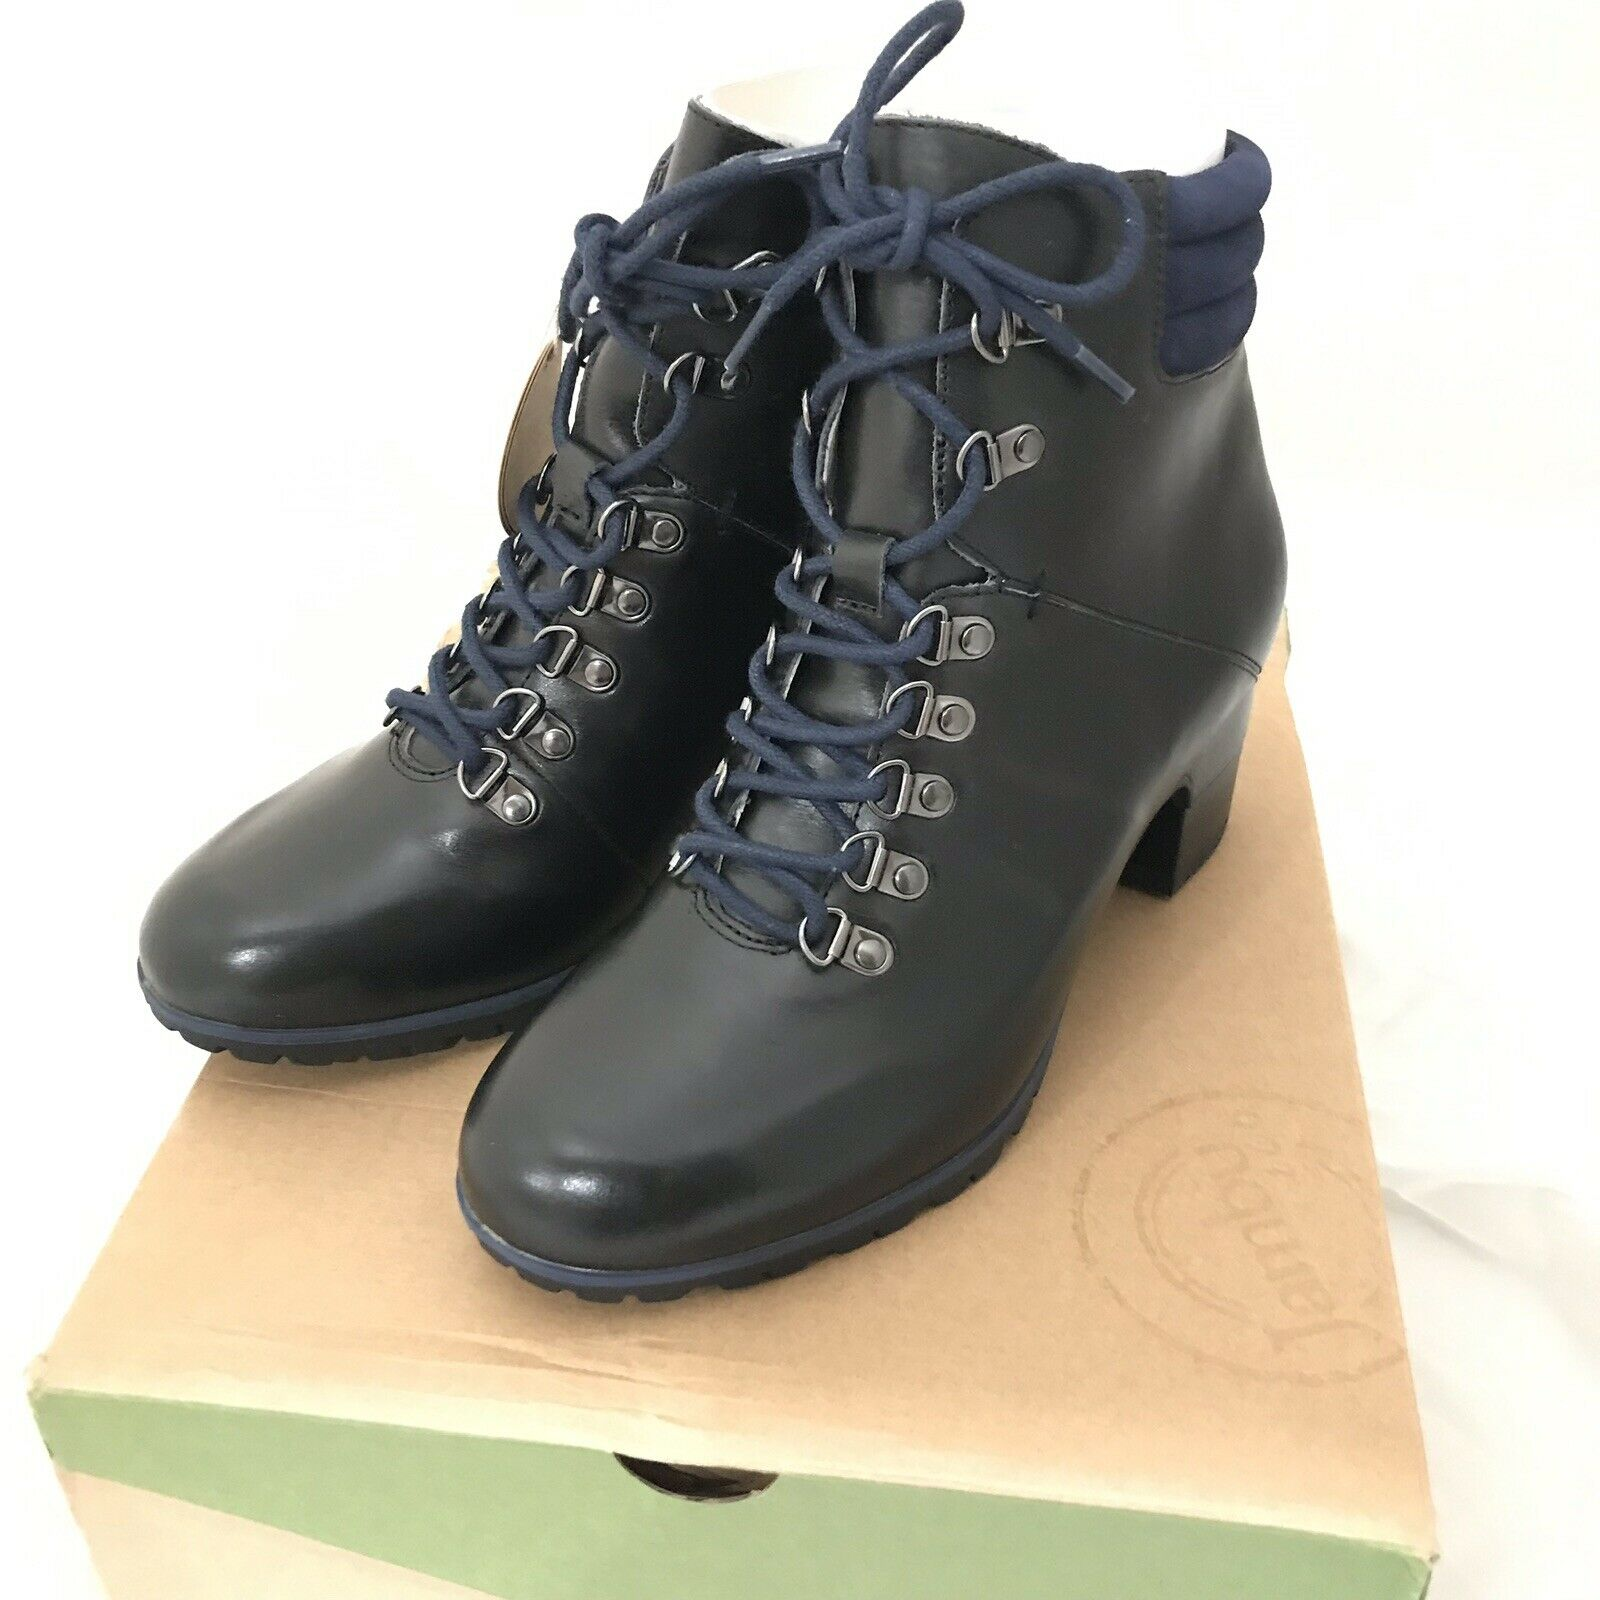 NEW Jambu Womens Burch Water Resistant Ankle Bootie Lace Up Midnight bluee 9.5 M